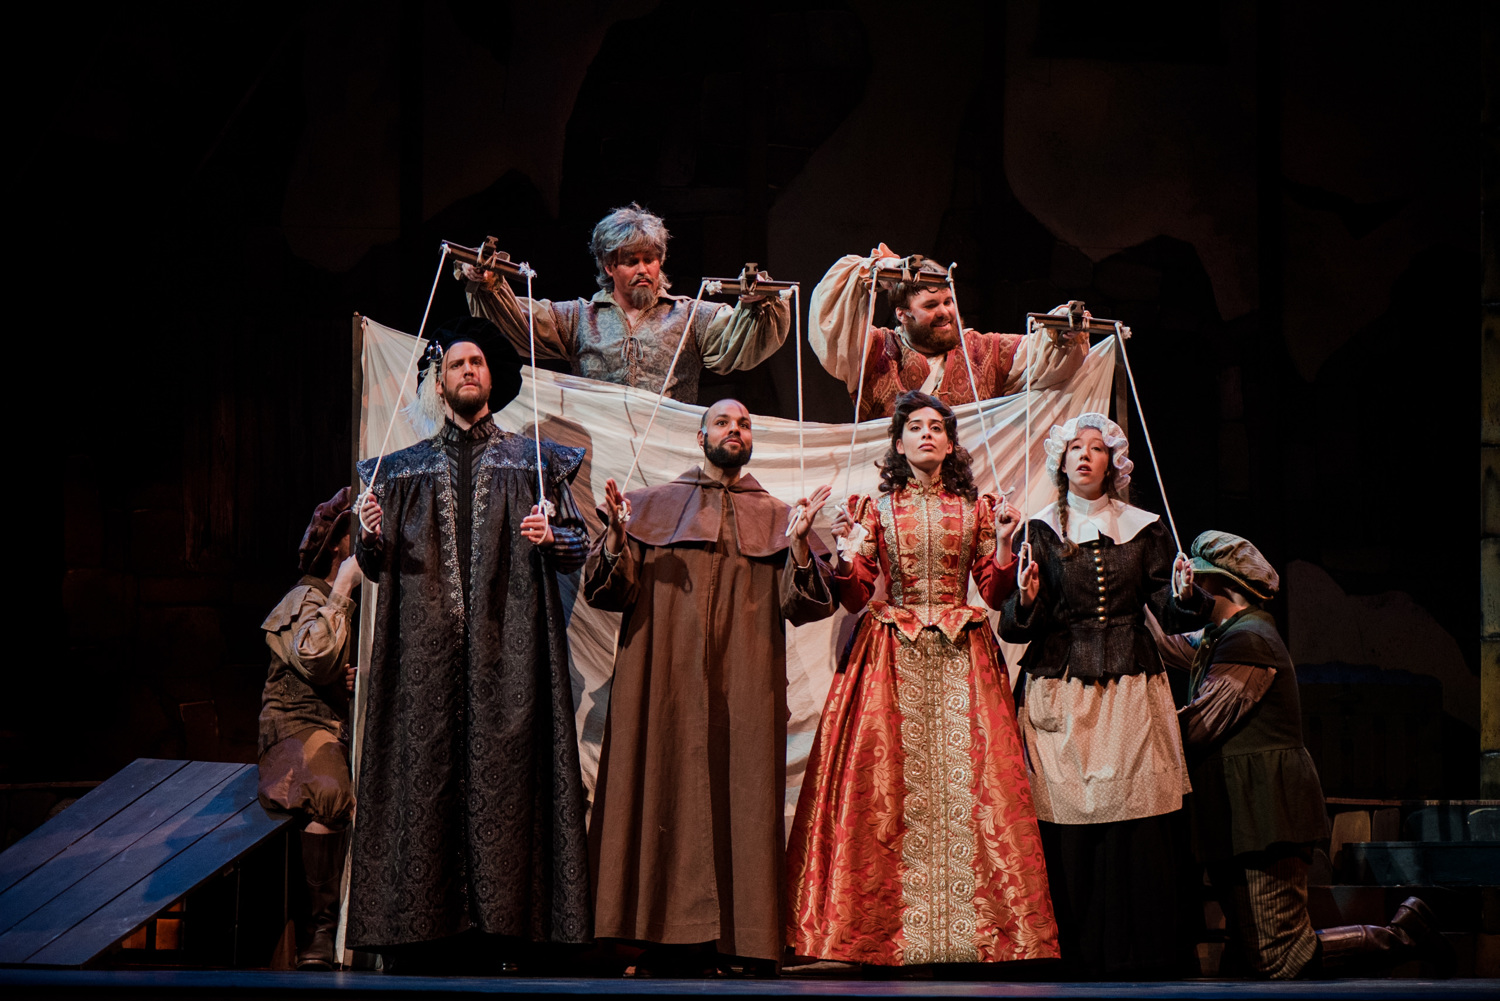 Man of La Mancha Pensacola Opera Directed by Dean Anthony Photo by Meg Burke Photography